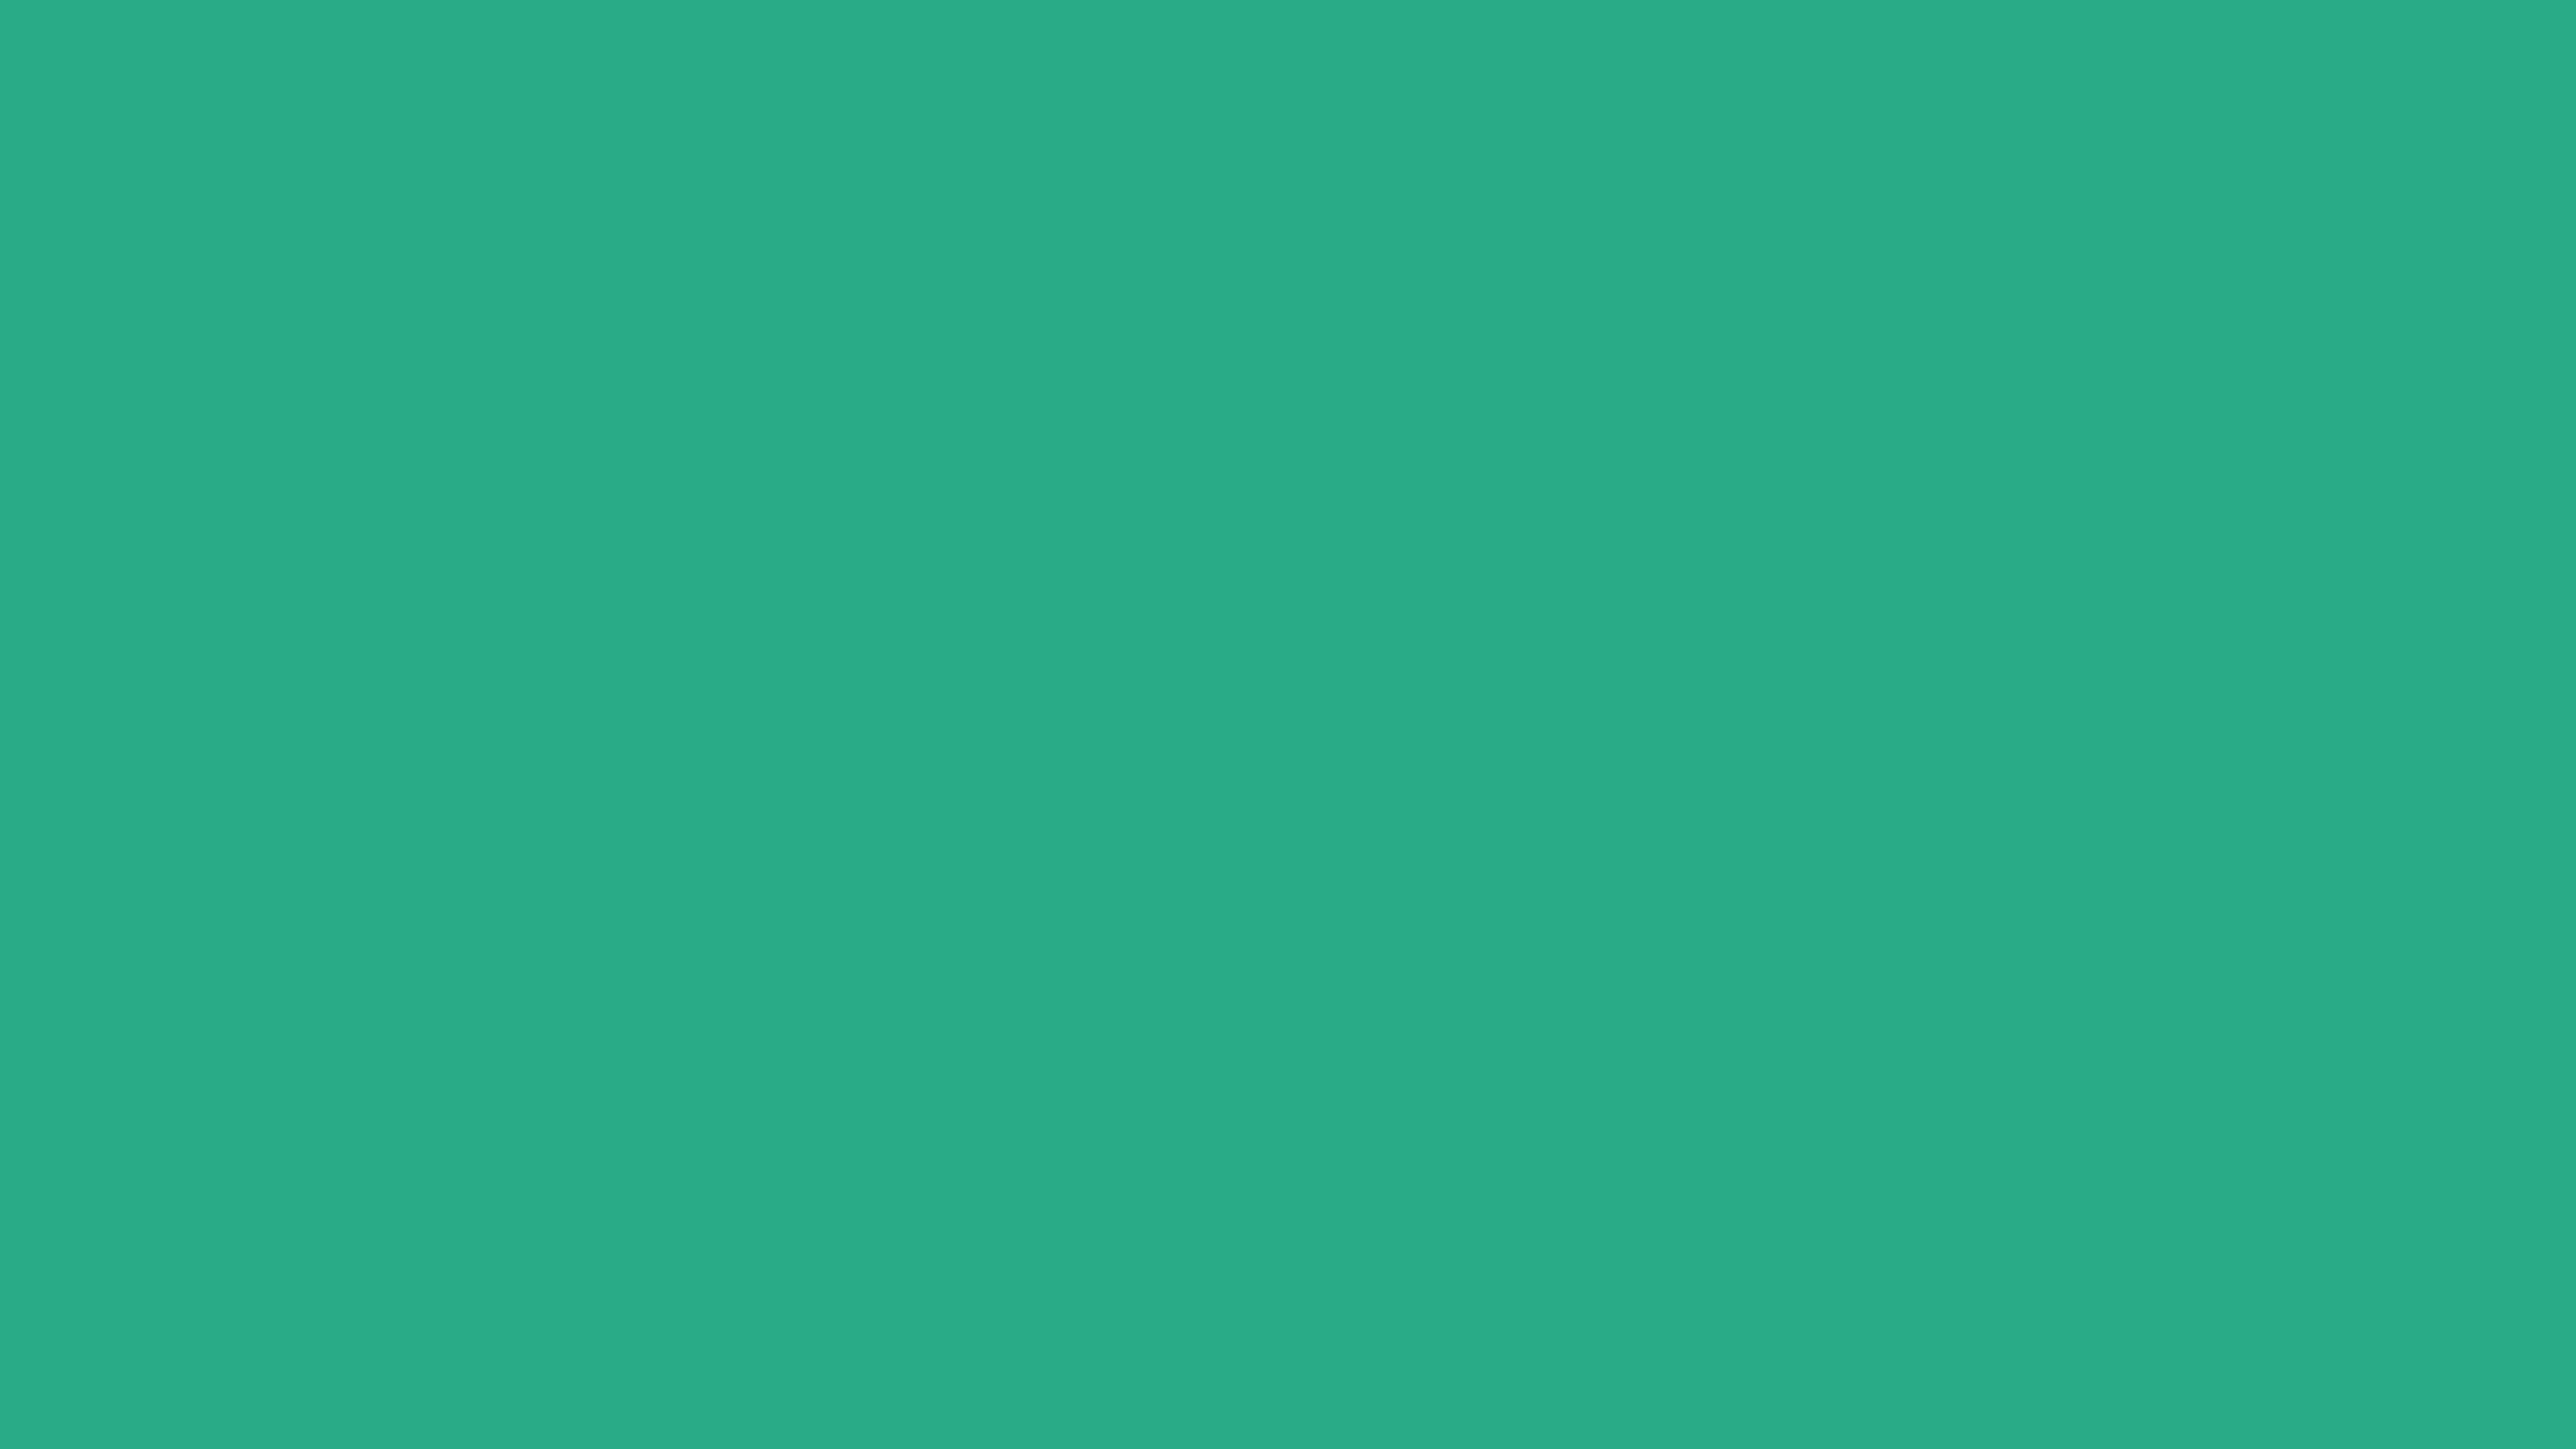 4096x2304 Jungle Green Solid Color Background